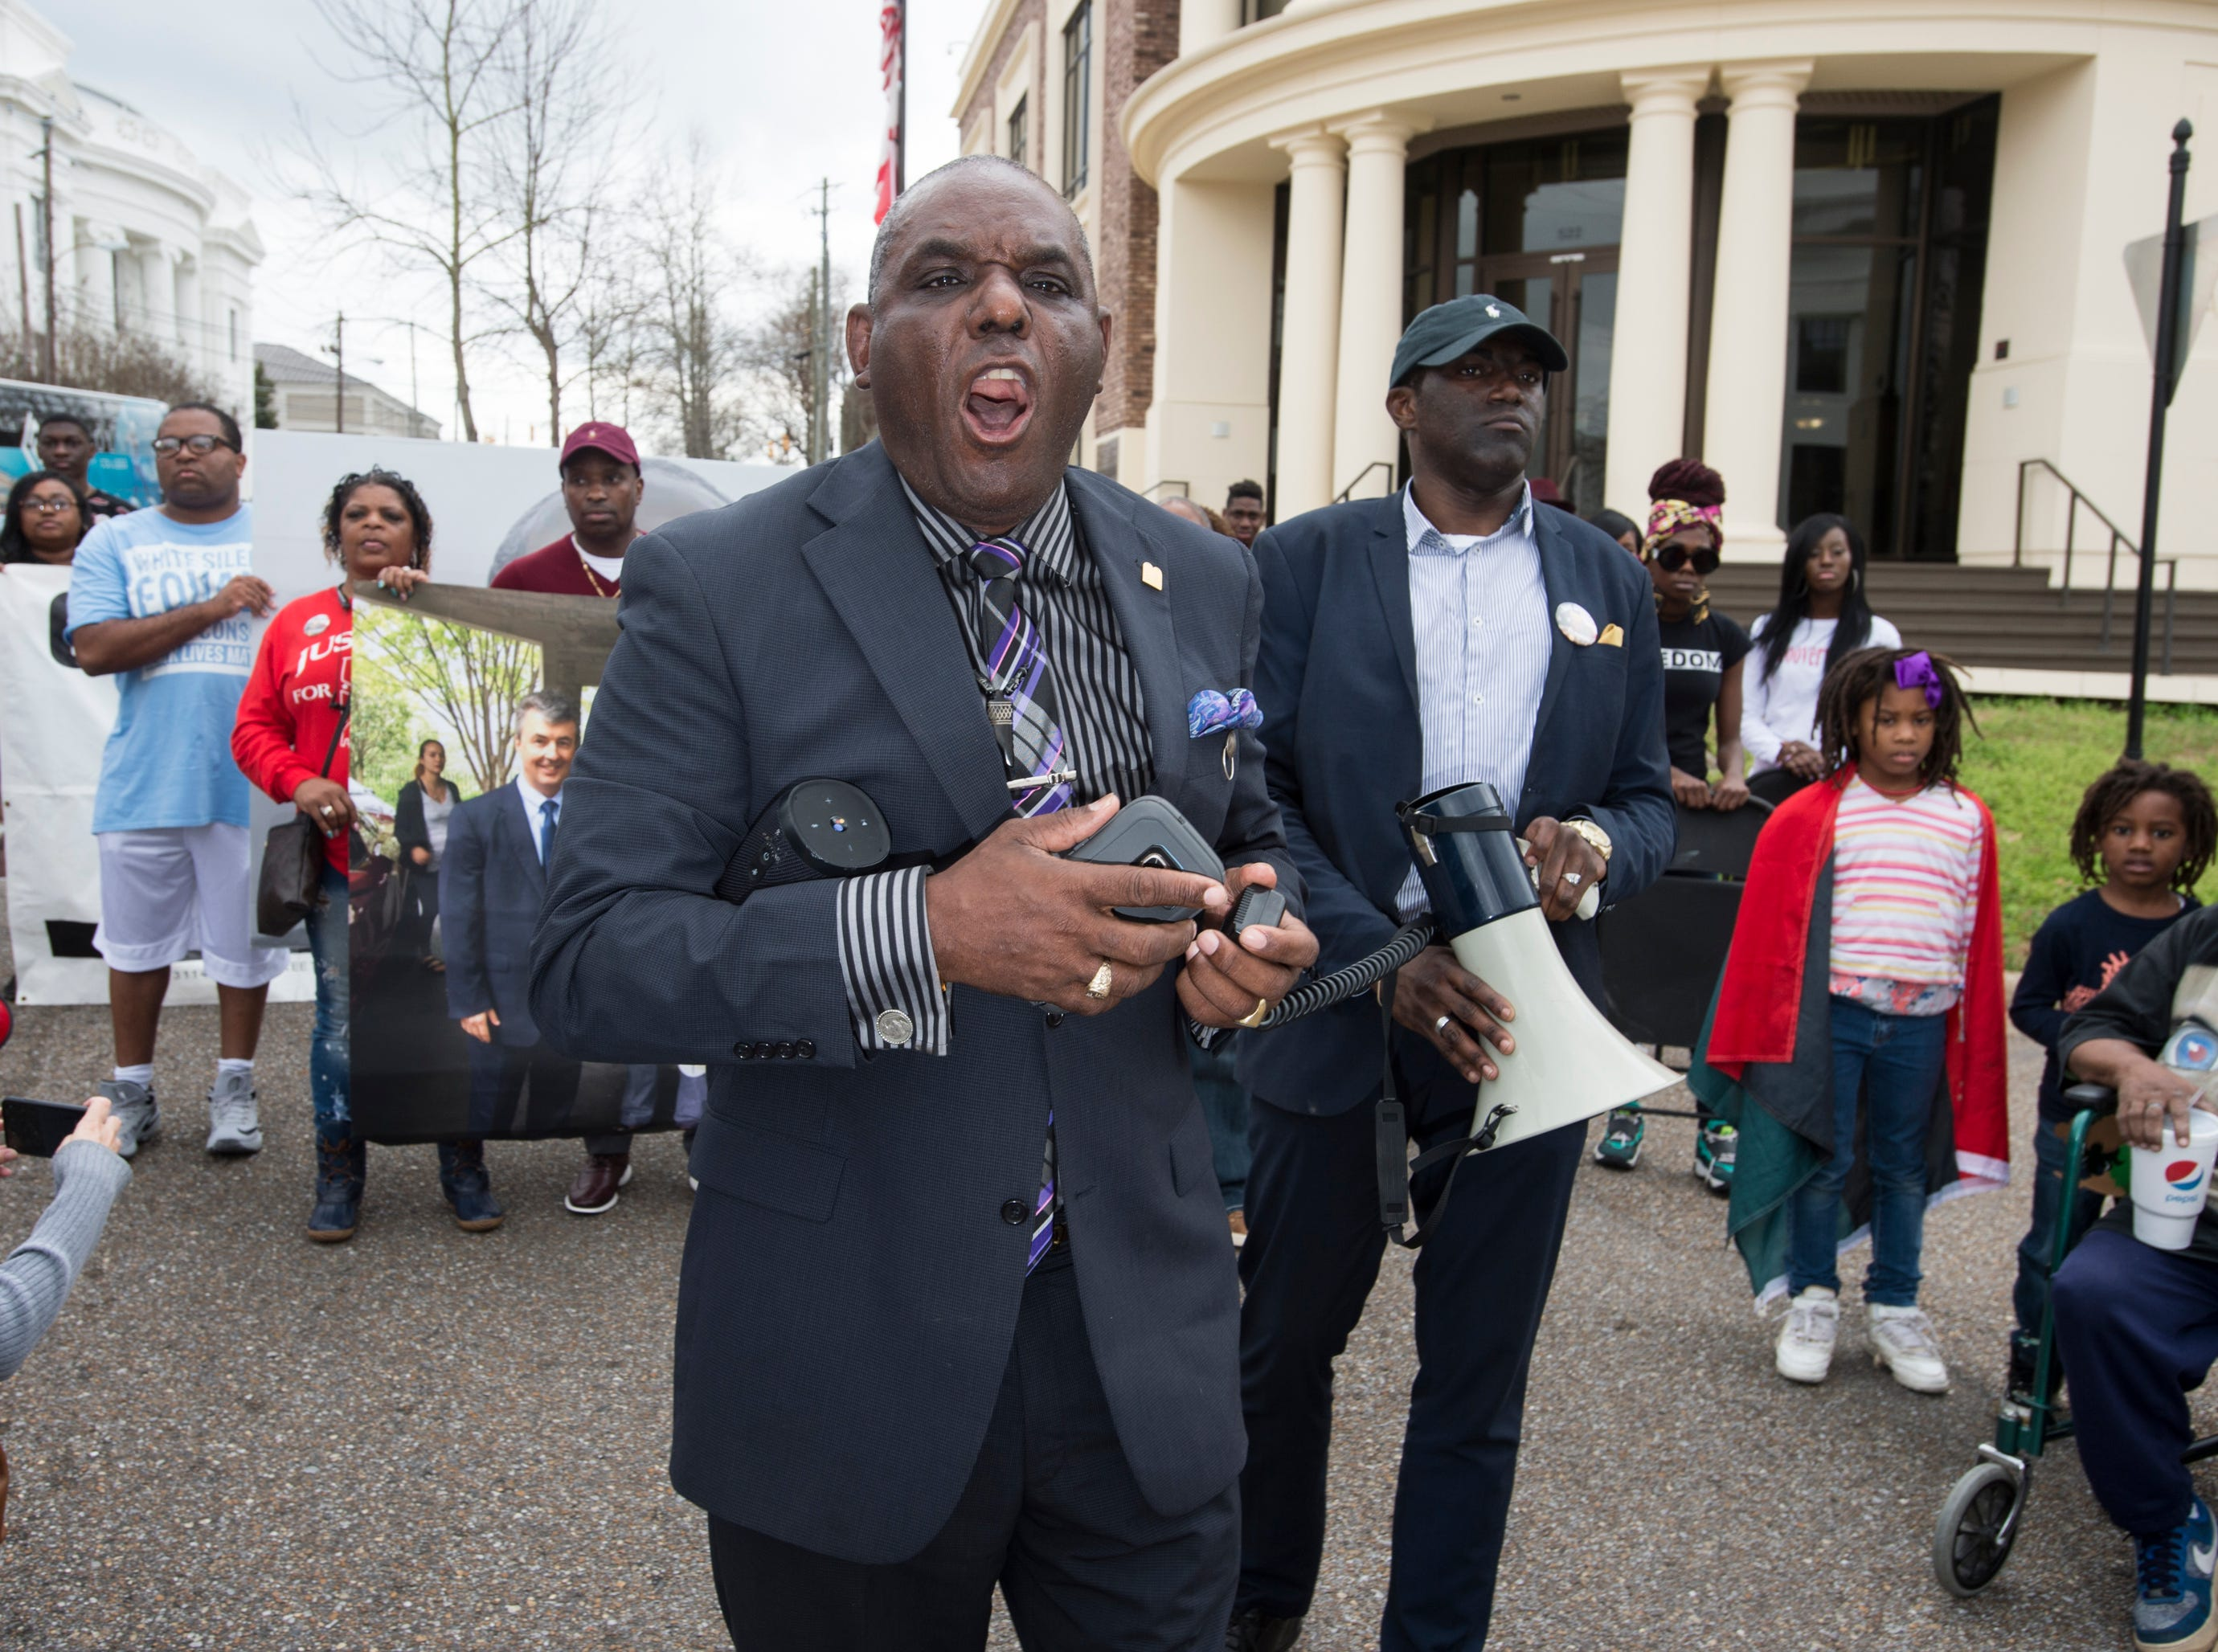 Protest organizer Frank Matthews joins EJ Bradford's family as they march around the Alabama Attorney General's office during a protest in Montgomery, Ala., on Wednesday, Feb. 6, 2019. EJ Bradford was shot and killed by police Nov. 22, 2018 in a Hoover, Ala. mall. Alabama Attorney General Steve Marshall announced Tuesday there would be no charges filed against the officer involved in the shooting.